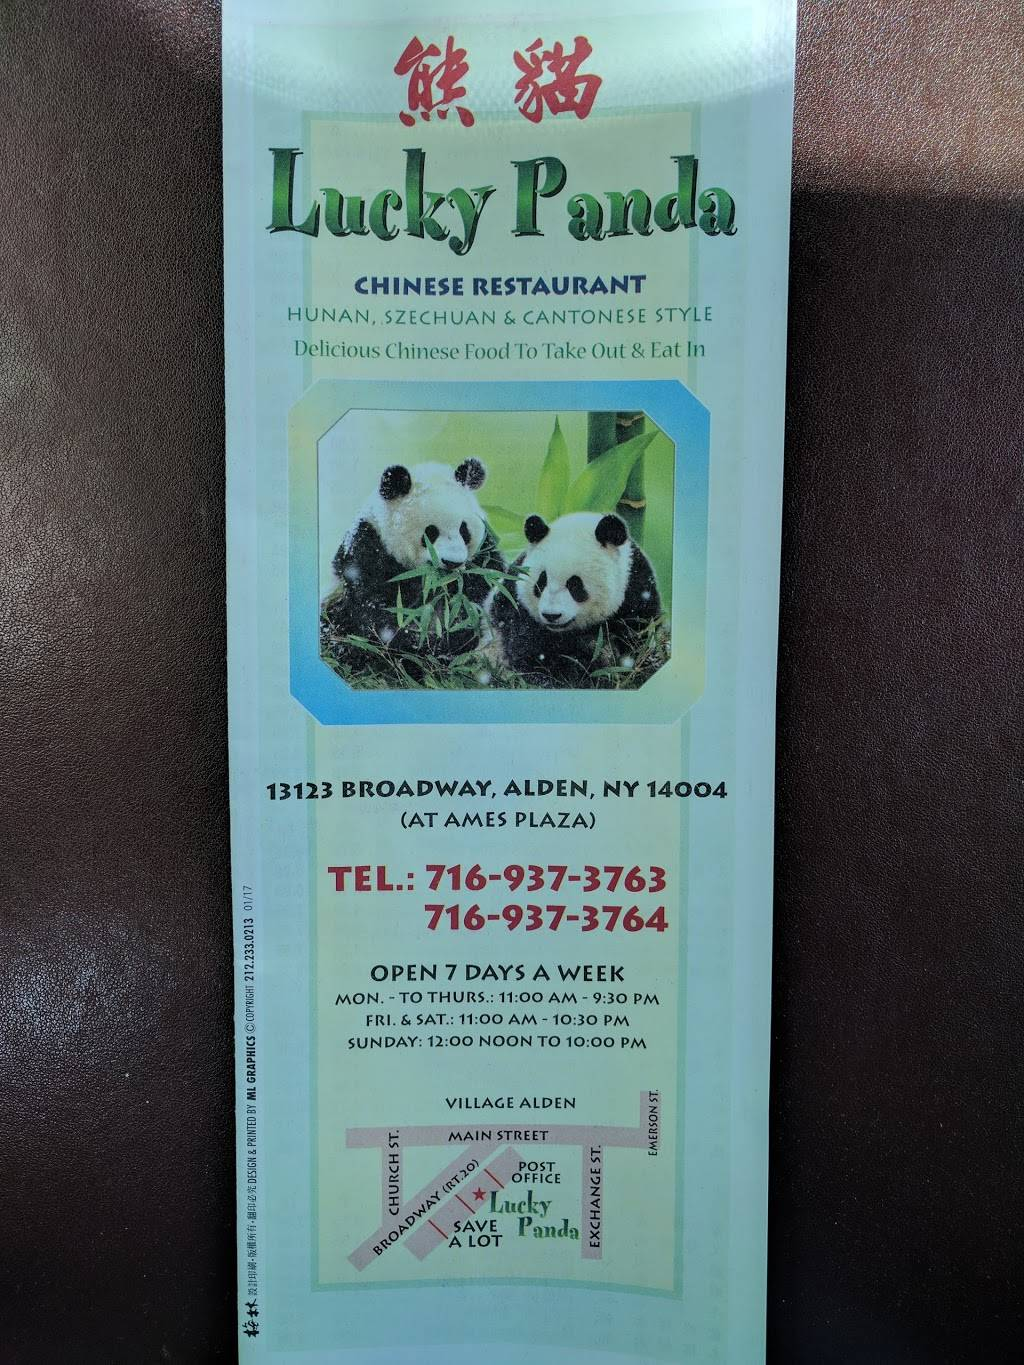 Lucky Panda Chinese Restaurant | restaurant | 13125 Broadway, Alden, NY 14004, USA | 7169373763 OR +1 716-937-3763